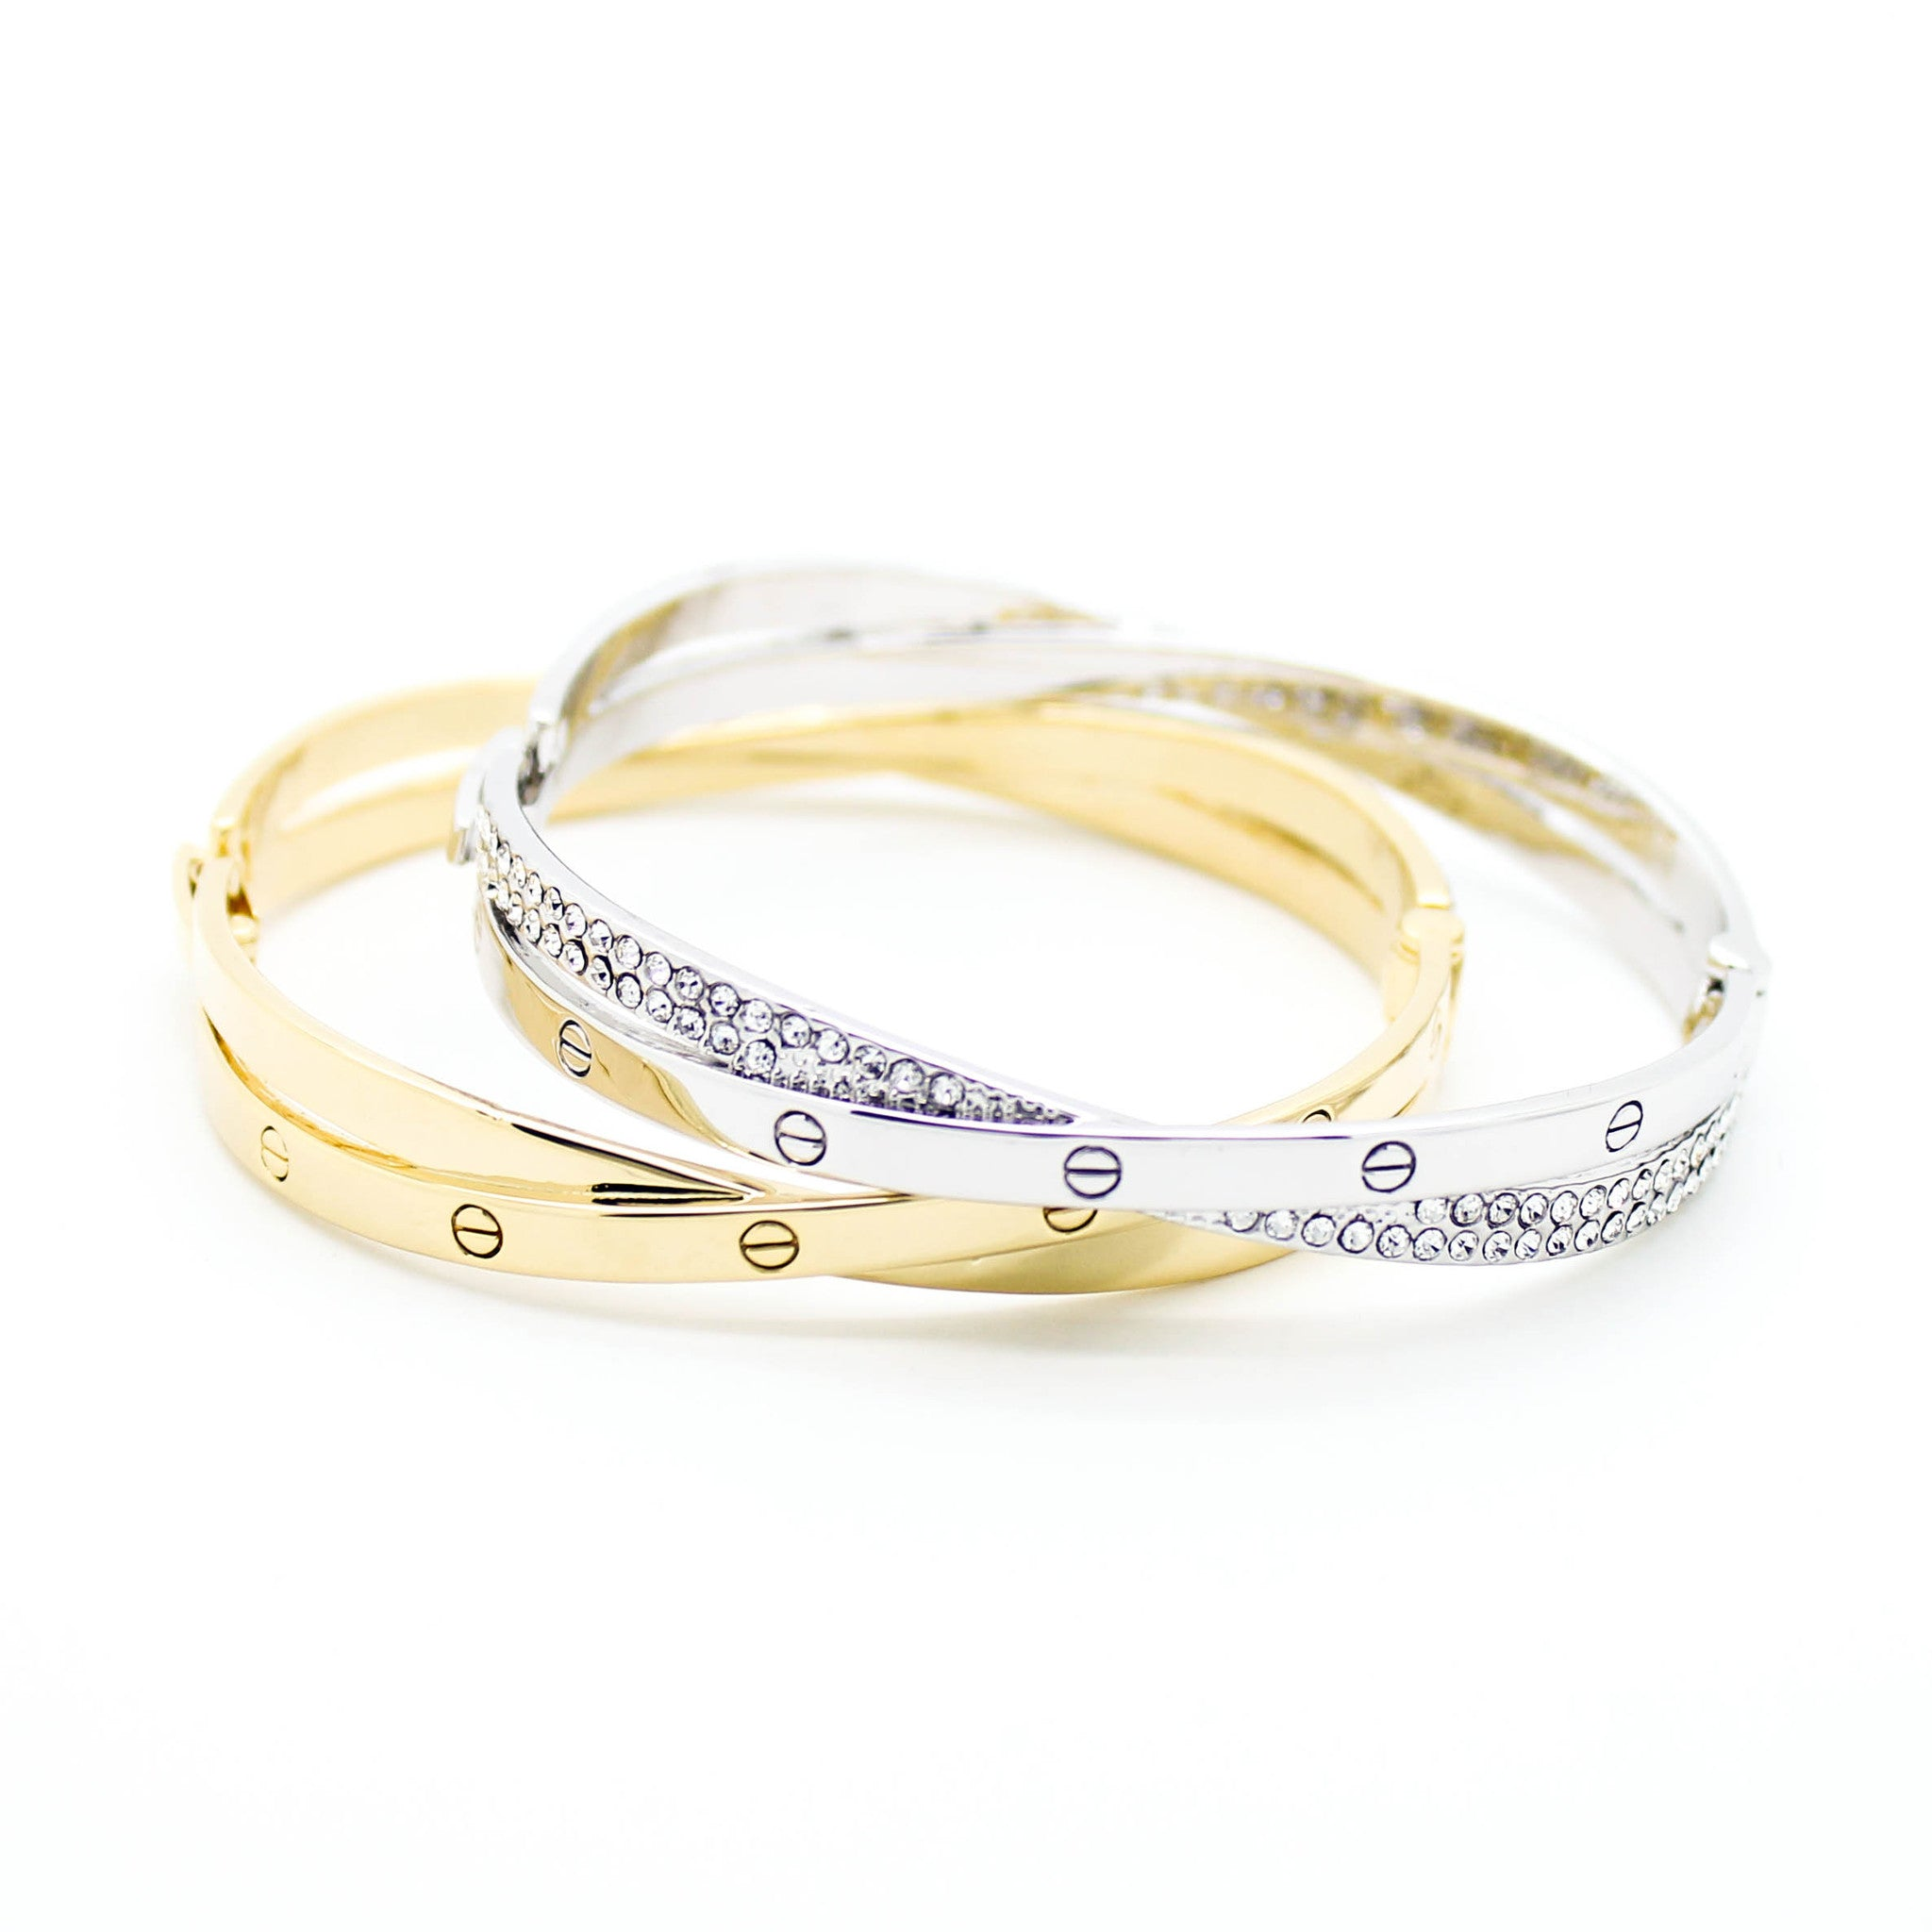 greek accent bangles tone gold two bangle style tennis diamond plated yellow pave bracelet key